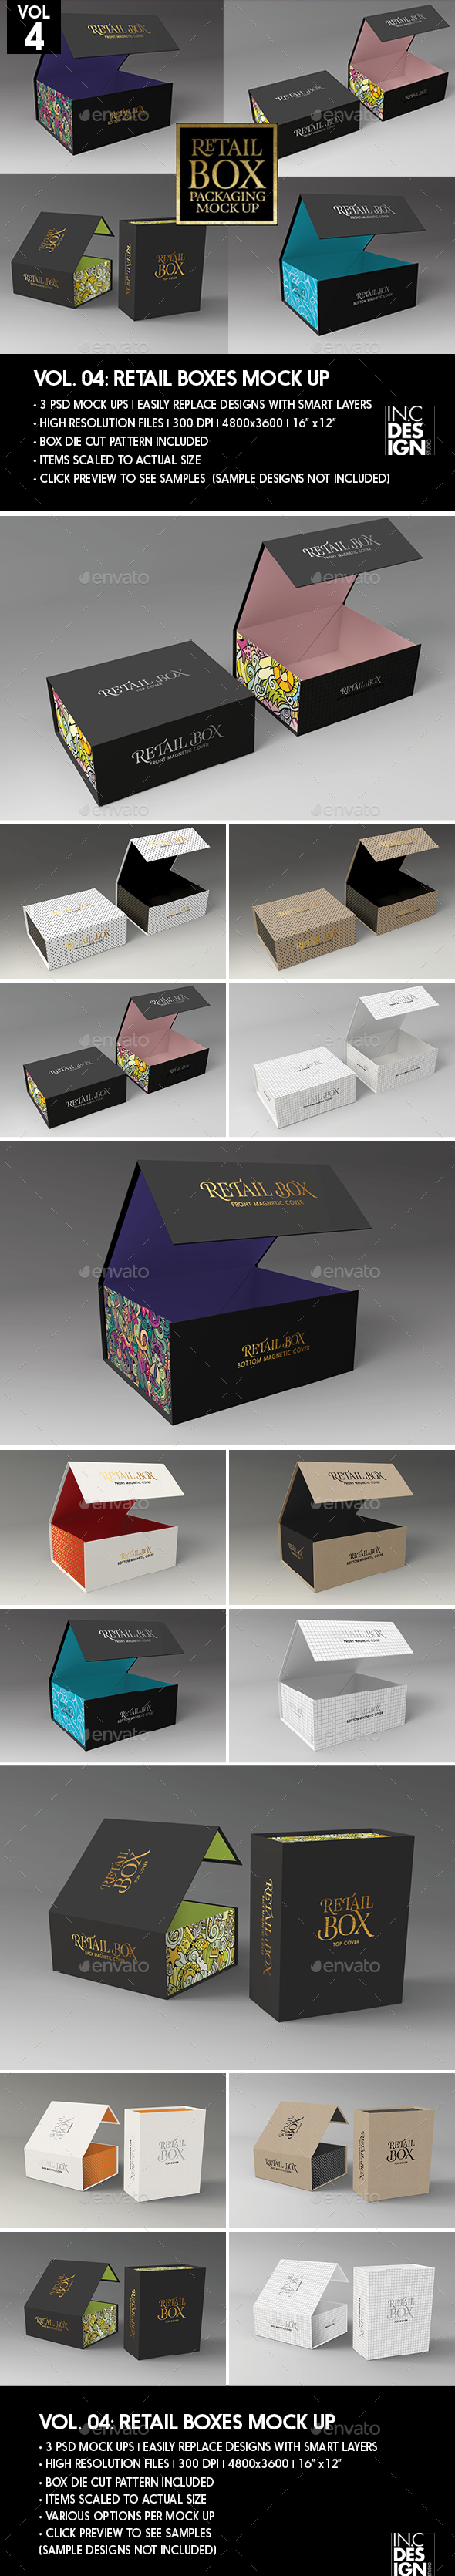 Retail Boxes Vol.4: Magnetic Box Packaging Mock Ups